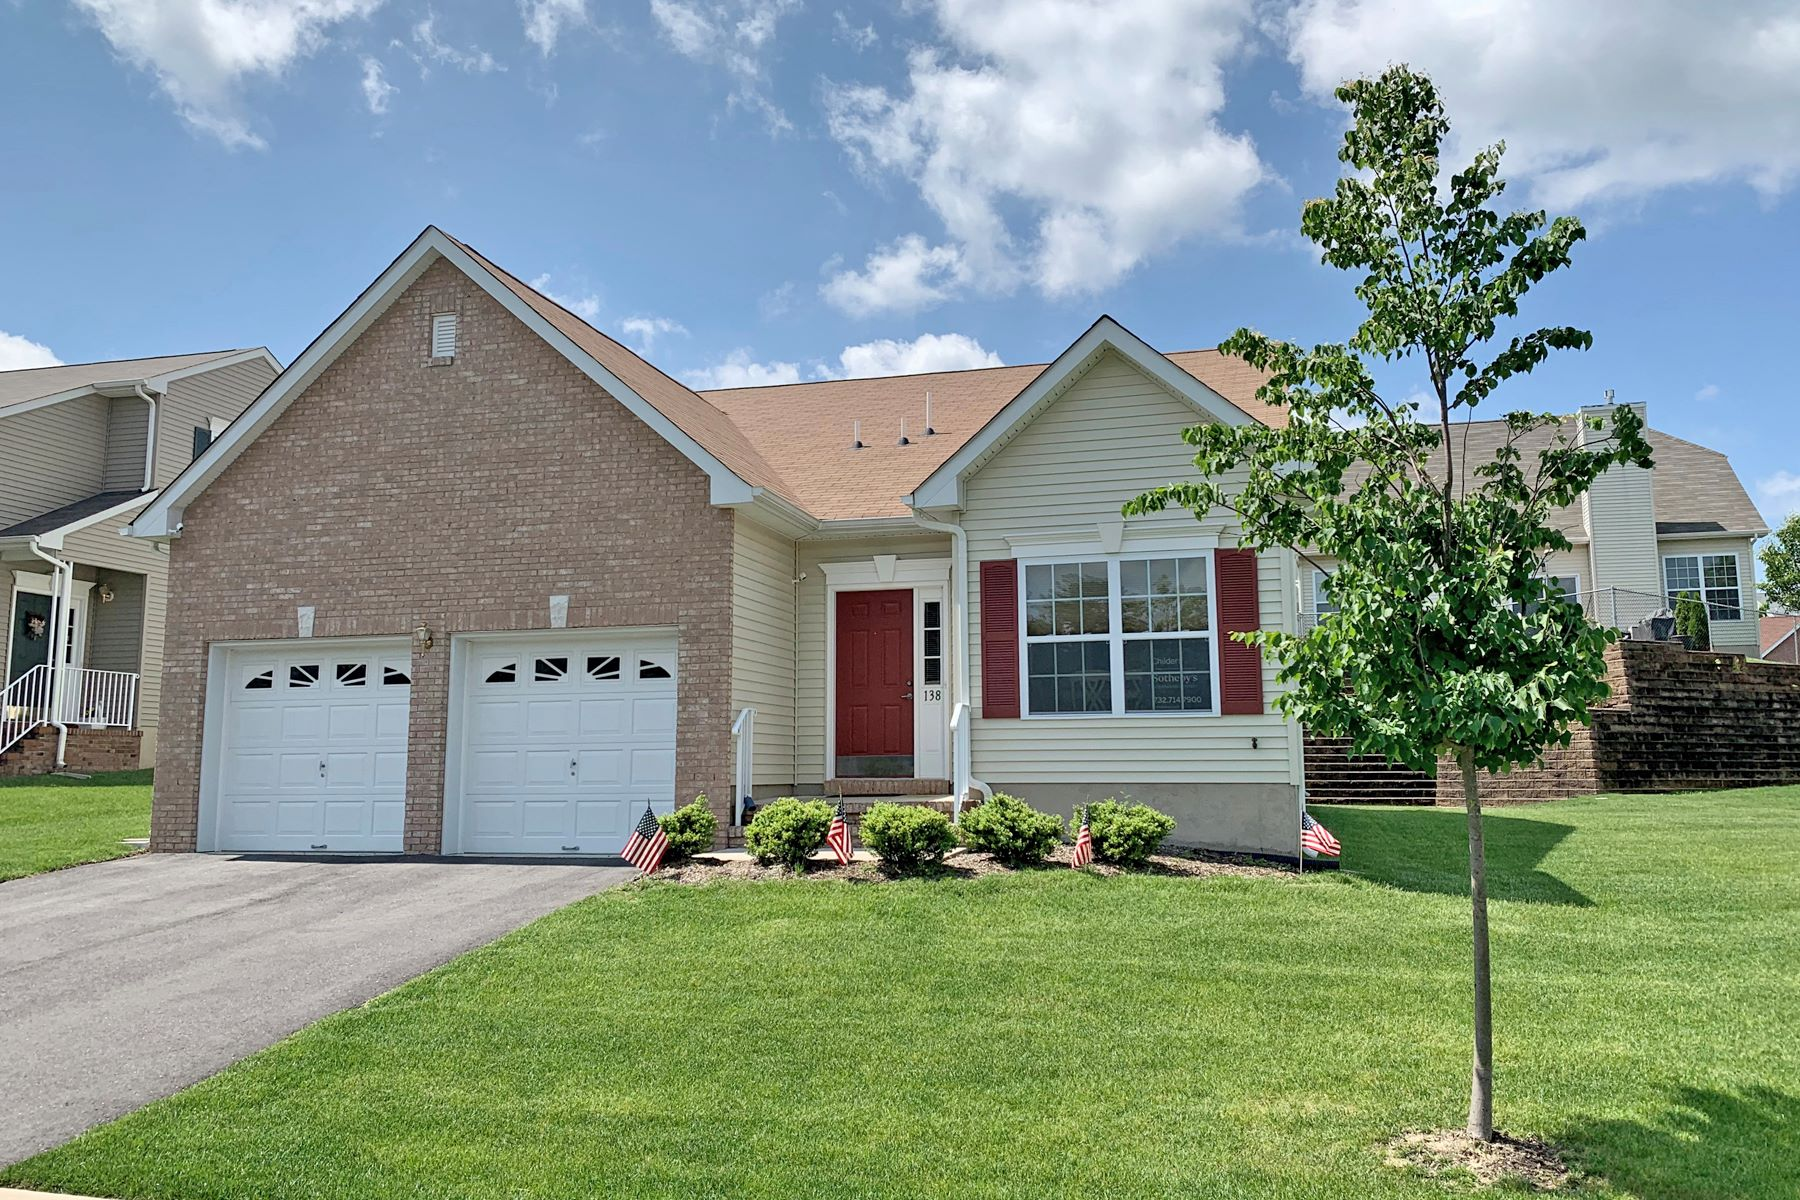 Single Family Homes for Sale at Everest Model In Pine View Estates 138 Maypink Lane Howell, New Jersey 07731 United States